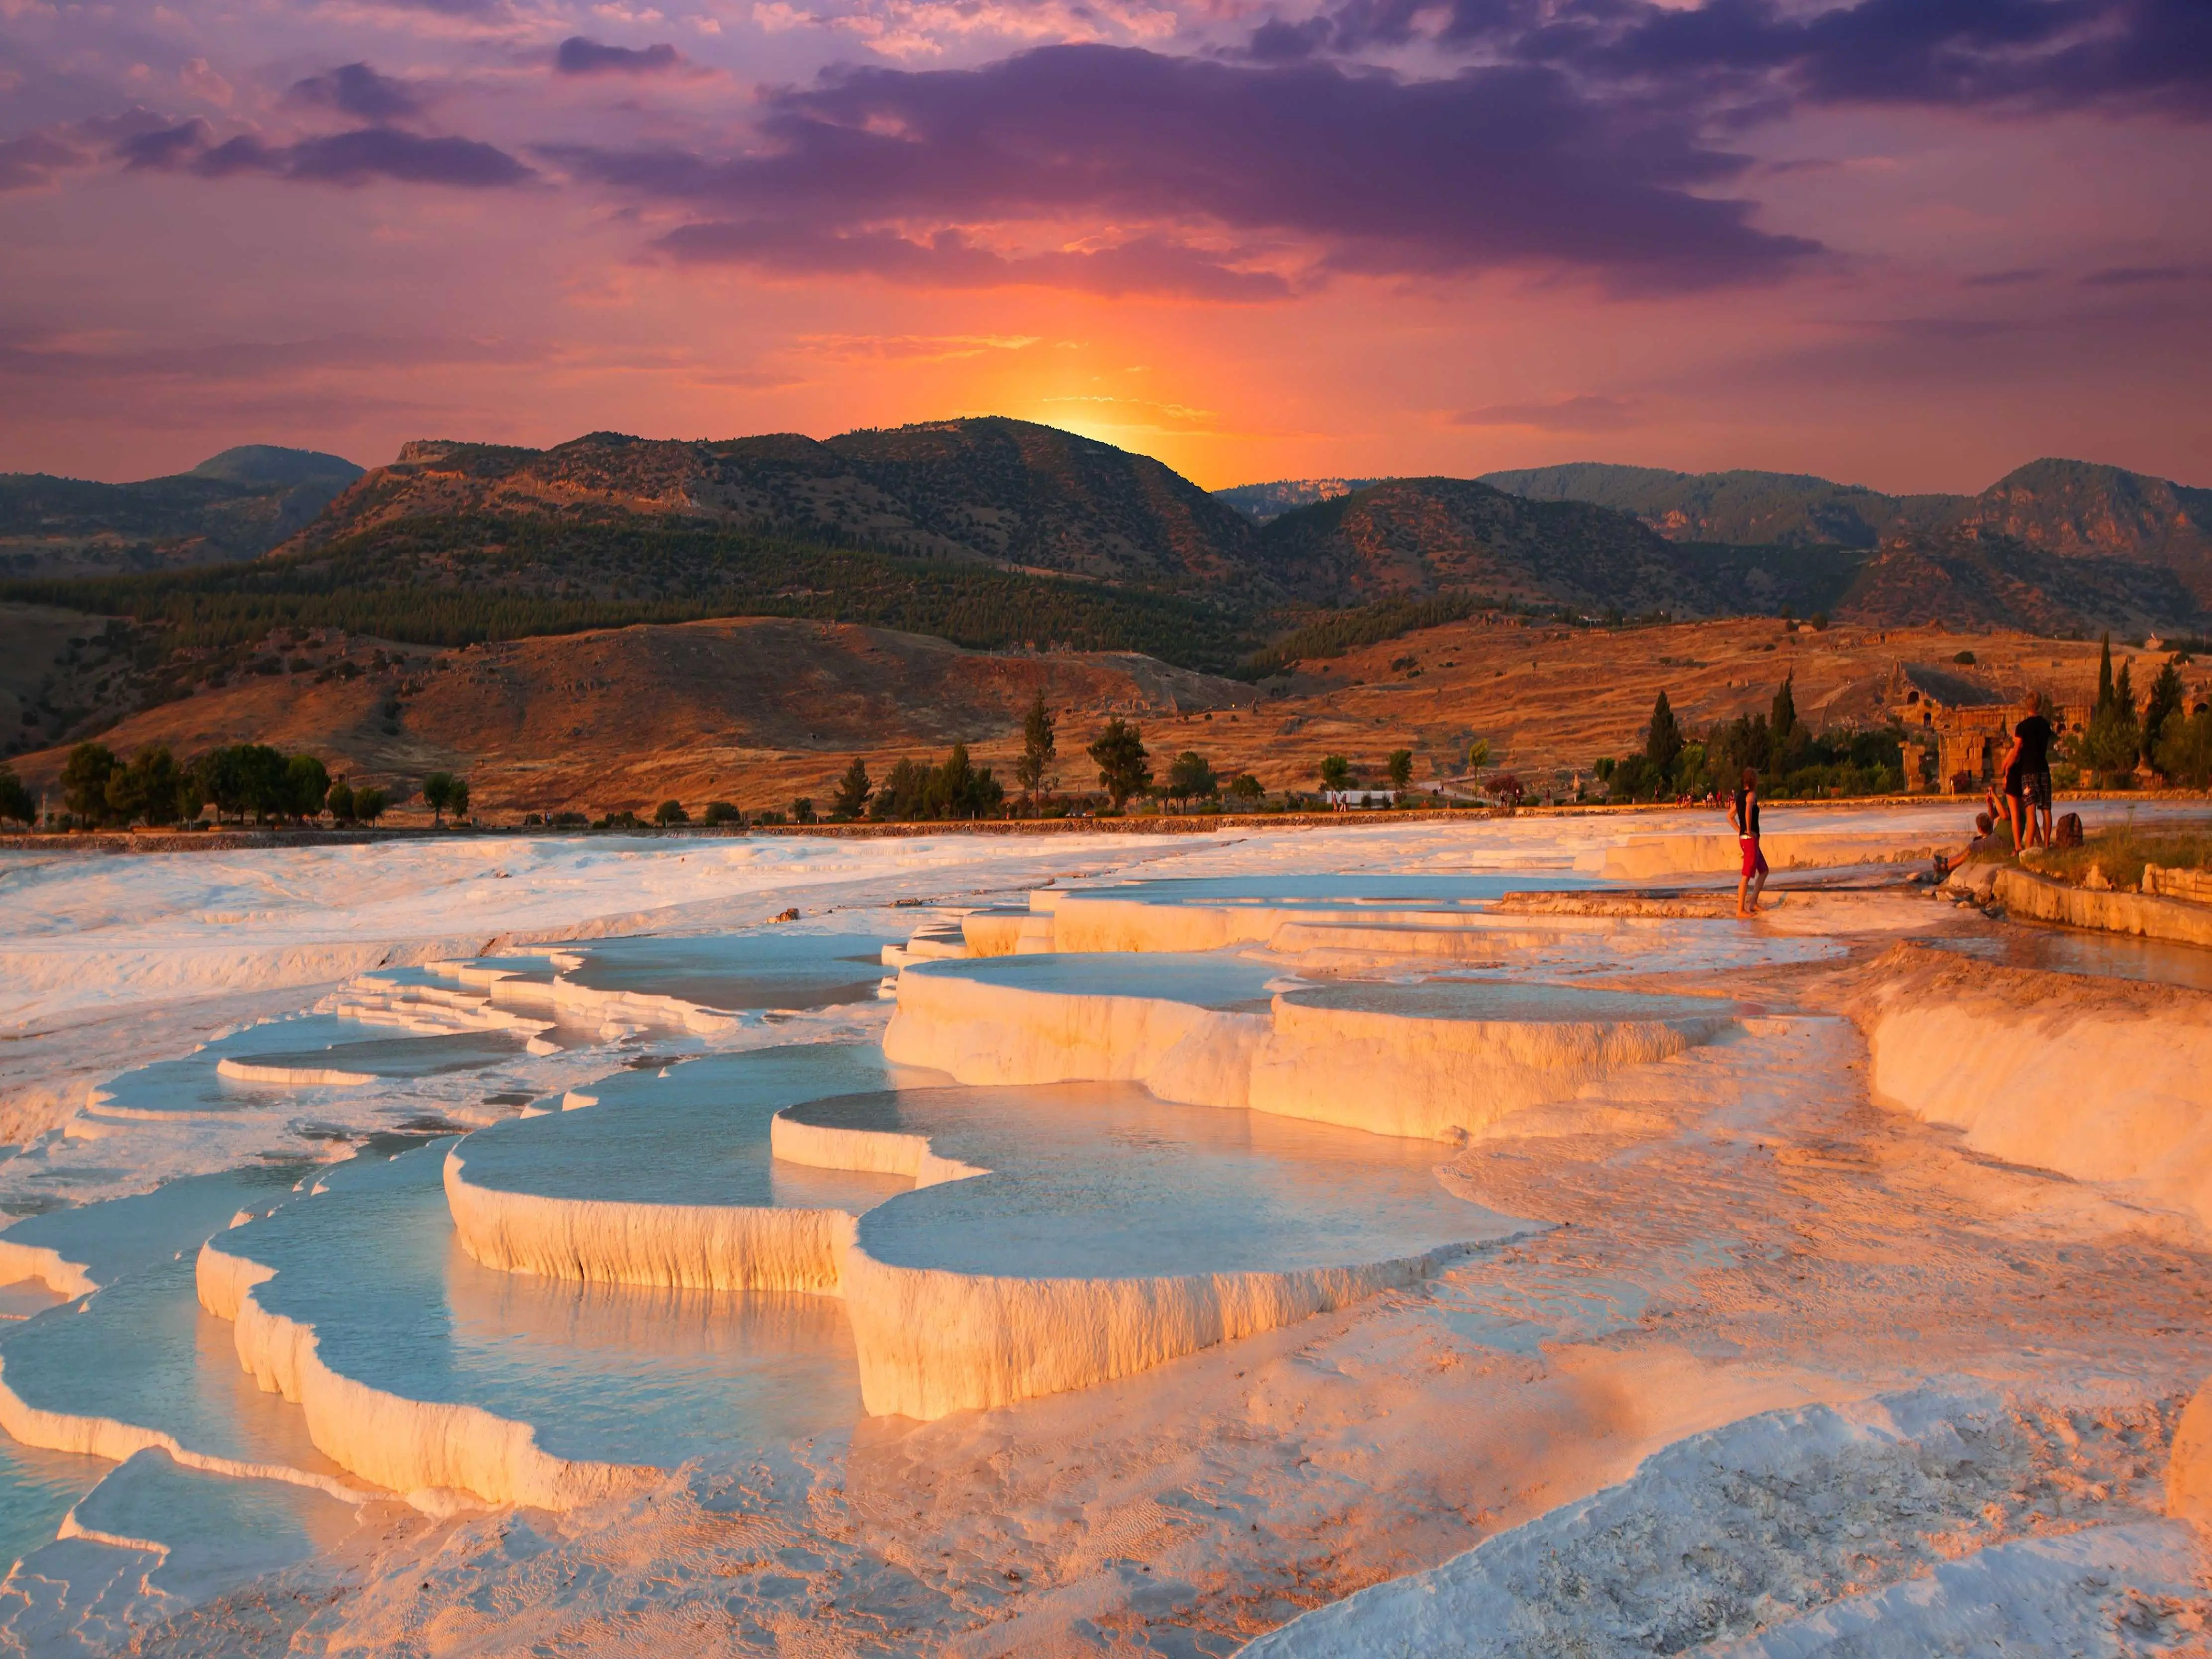 The naturally terraced thermal springs of Hierapolis-Pamukkale in the province of Denizli in western Turkey, date as far back as the second century B.C. Formed by calcite in the water, the hot springs look like stunning white clouds.